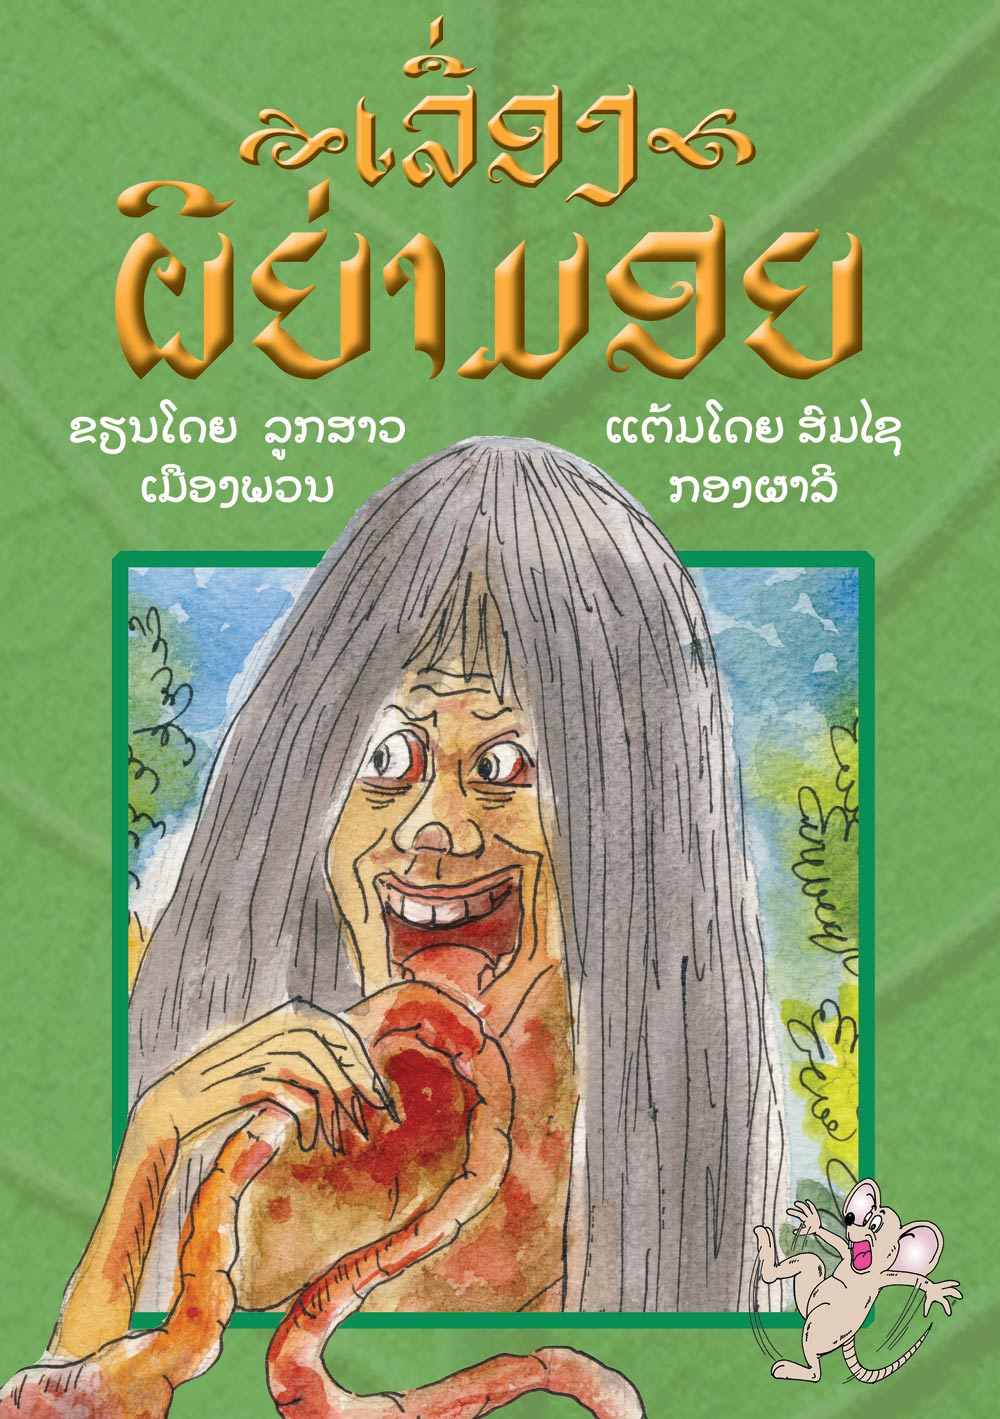 Phiiyamoi large book cover, published in Lao language